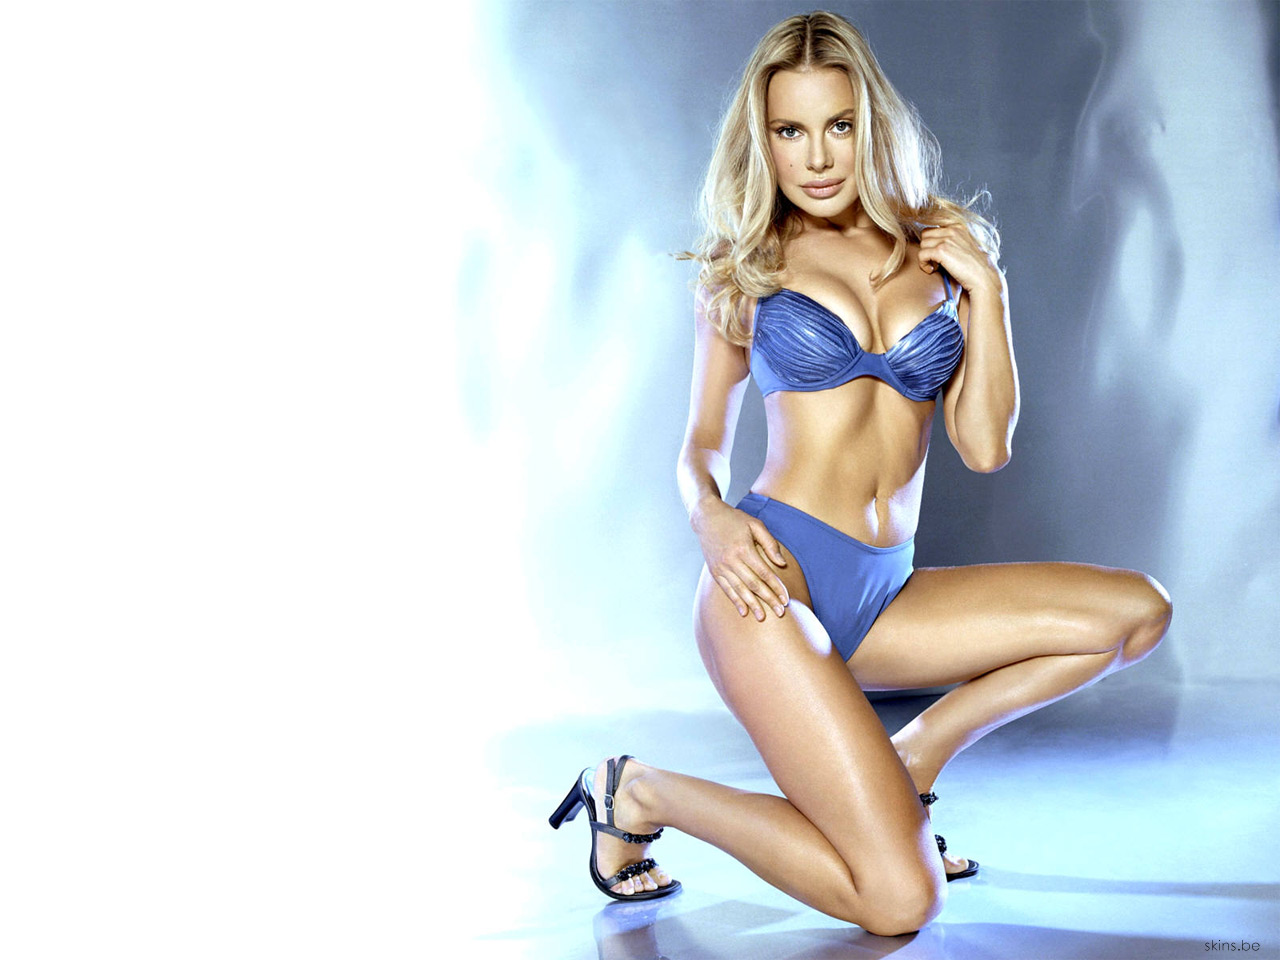 Xenia Seeberg wallpaper (#30989)